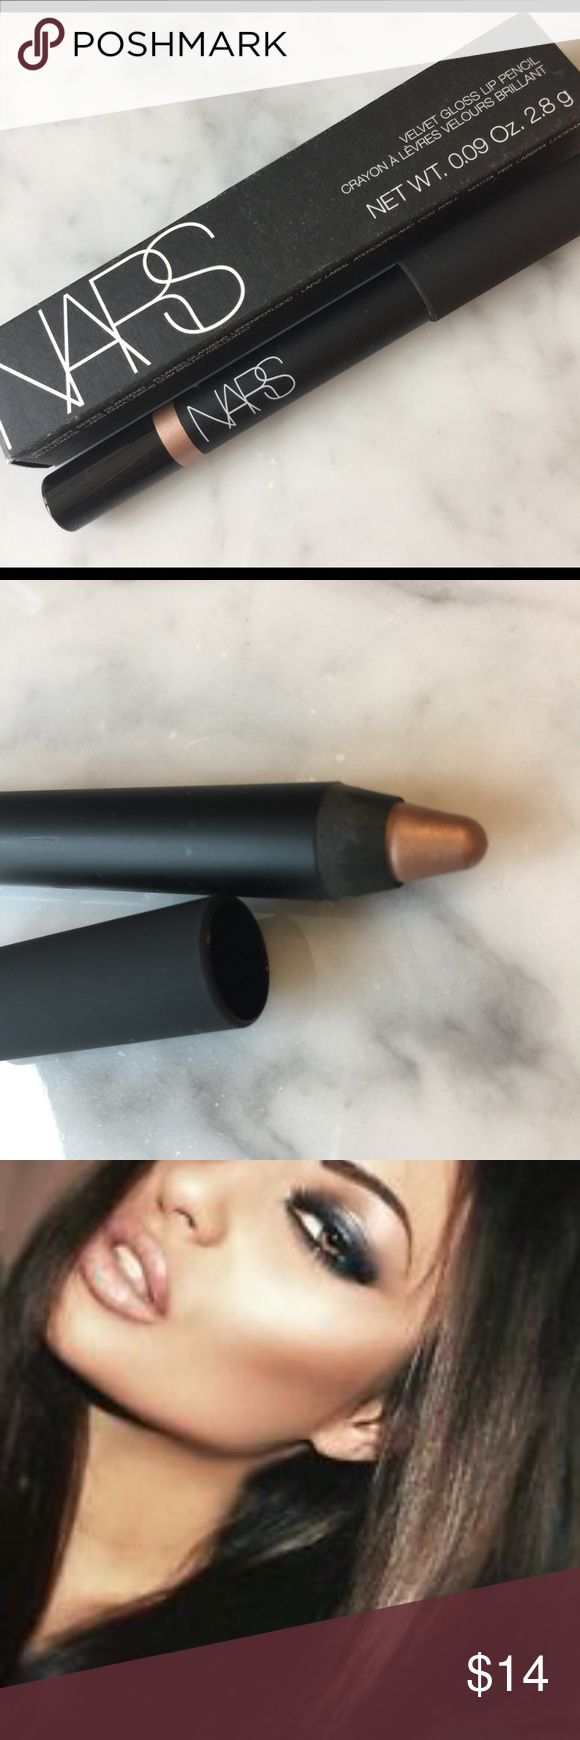 """NARS Velvet Lip Gloss Pencil in """"Cythere"""" New in box, never swatched or used. Metallic rose gold color. """"This jumbo lip pencil provides glossy color. Imparts luxurious shine to illuminate your lips. Lightweight formula & comfortable to wear. Enriched with vitamin e plus a blend of moisture-rich hyaluronic spheres. Gives superior hydration to make lips appear fuller leaves an extra smooth, buttery feel on lips"""" NARS Makeup Lipstick"""